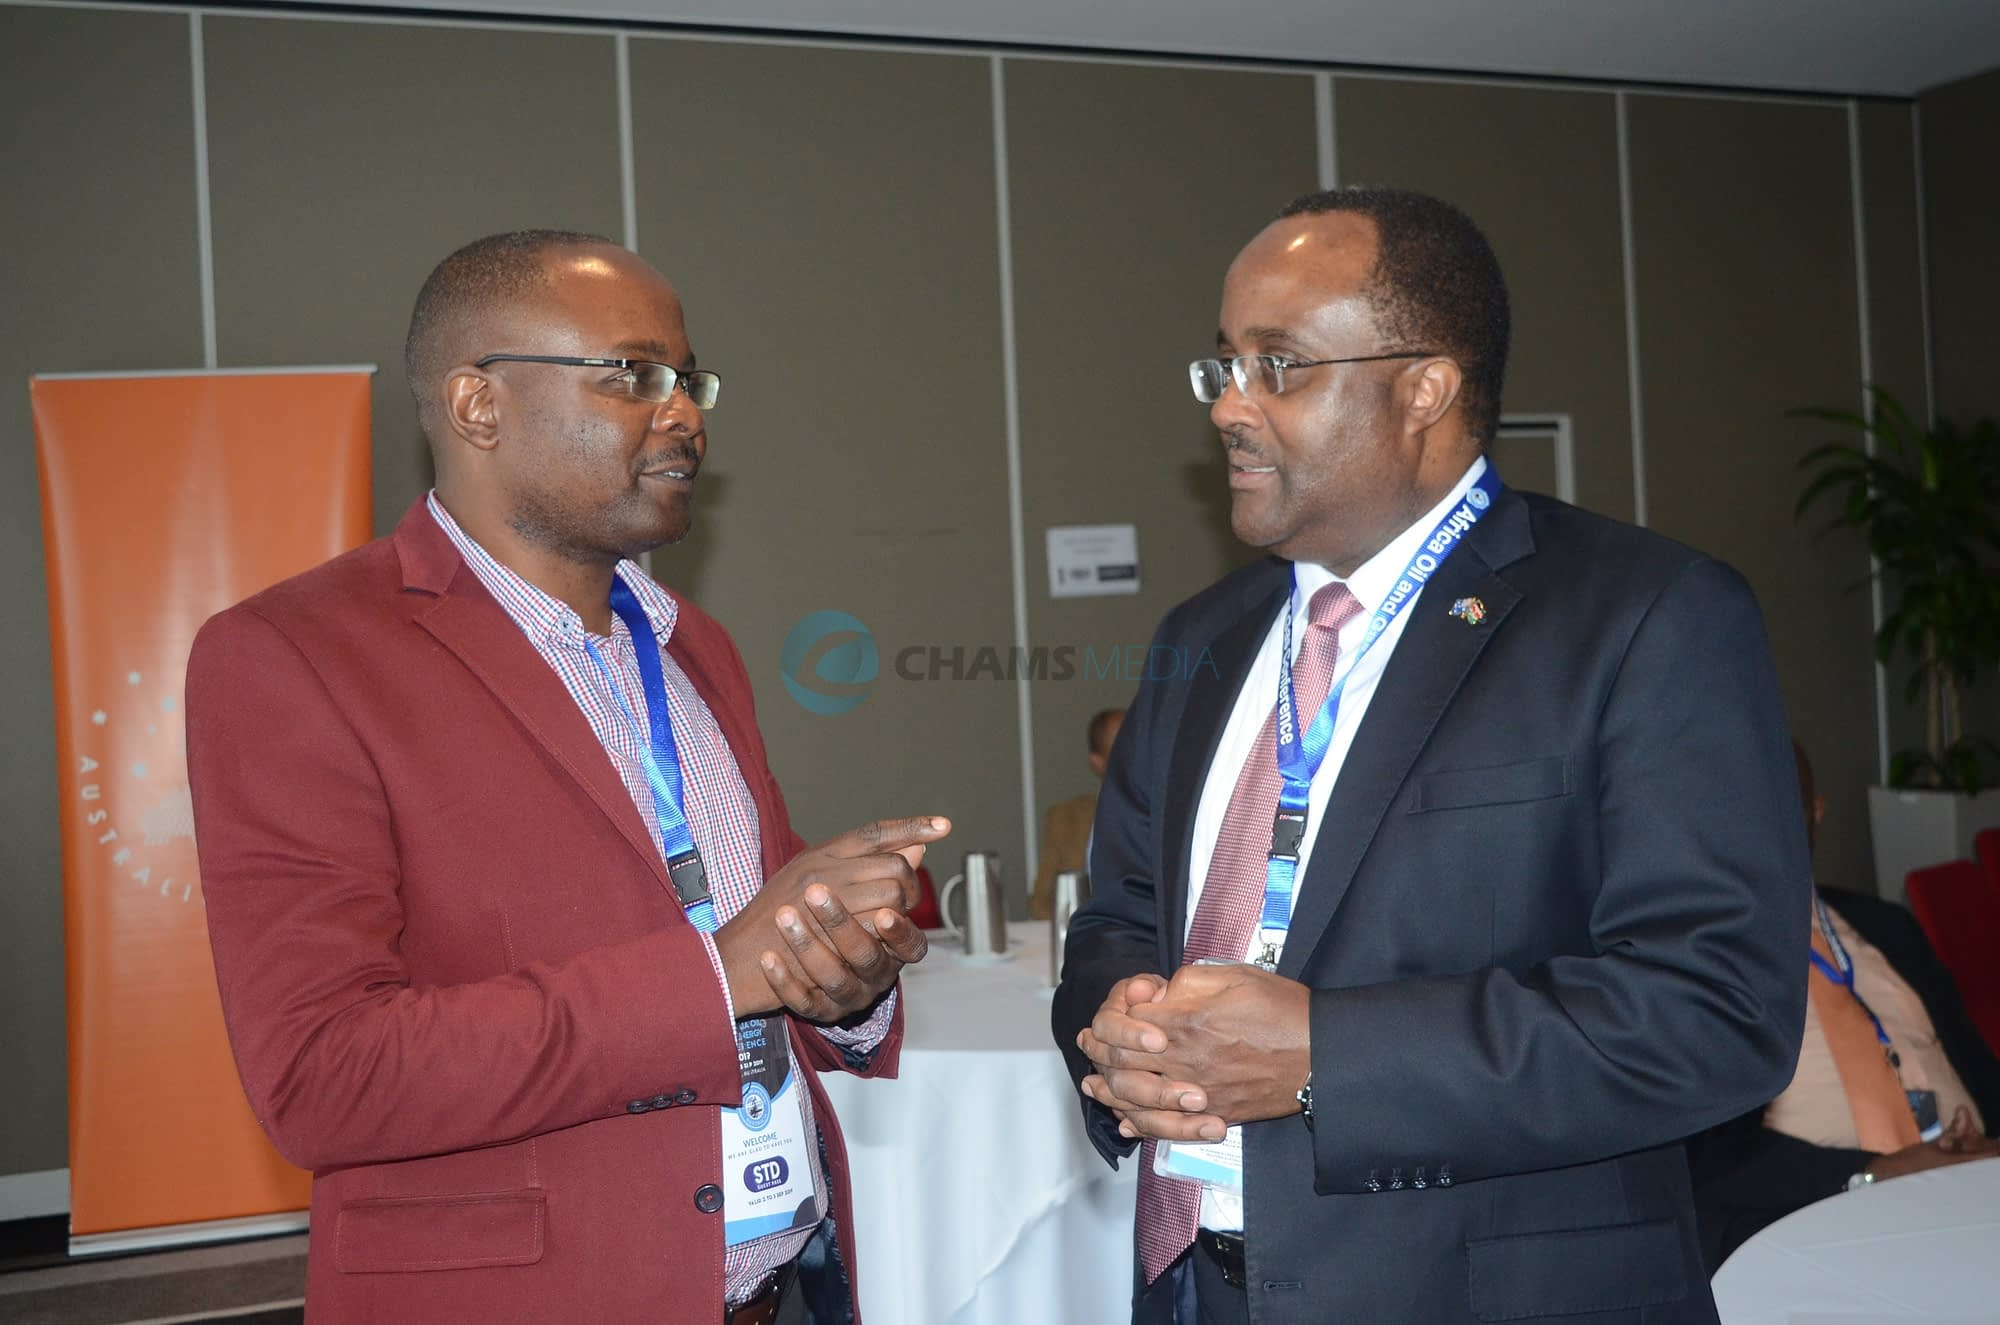 CHAM Media CEO with Kenya's High Commissioner to Australia and New Zealand Isaiya Kabira in Perth City in September 2019 during the Africa Oil, Gas and Energy Conference